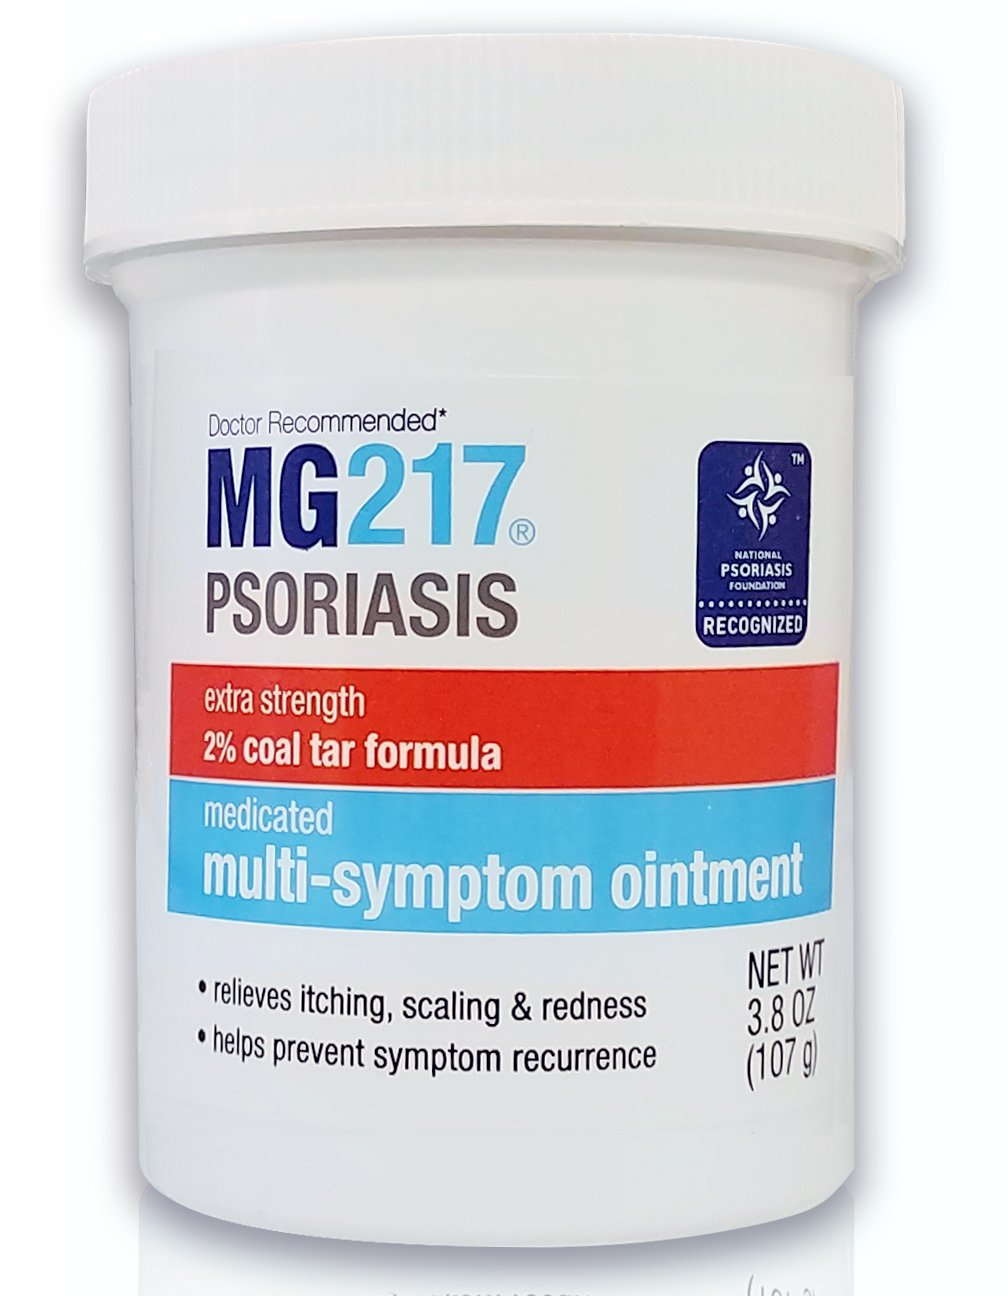 MG217 Psoriasis Treatment, Medicated Conditioning 2% Coal Tar Multi-Symptom Ointment, 3.8 Ounce by MG217